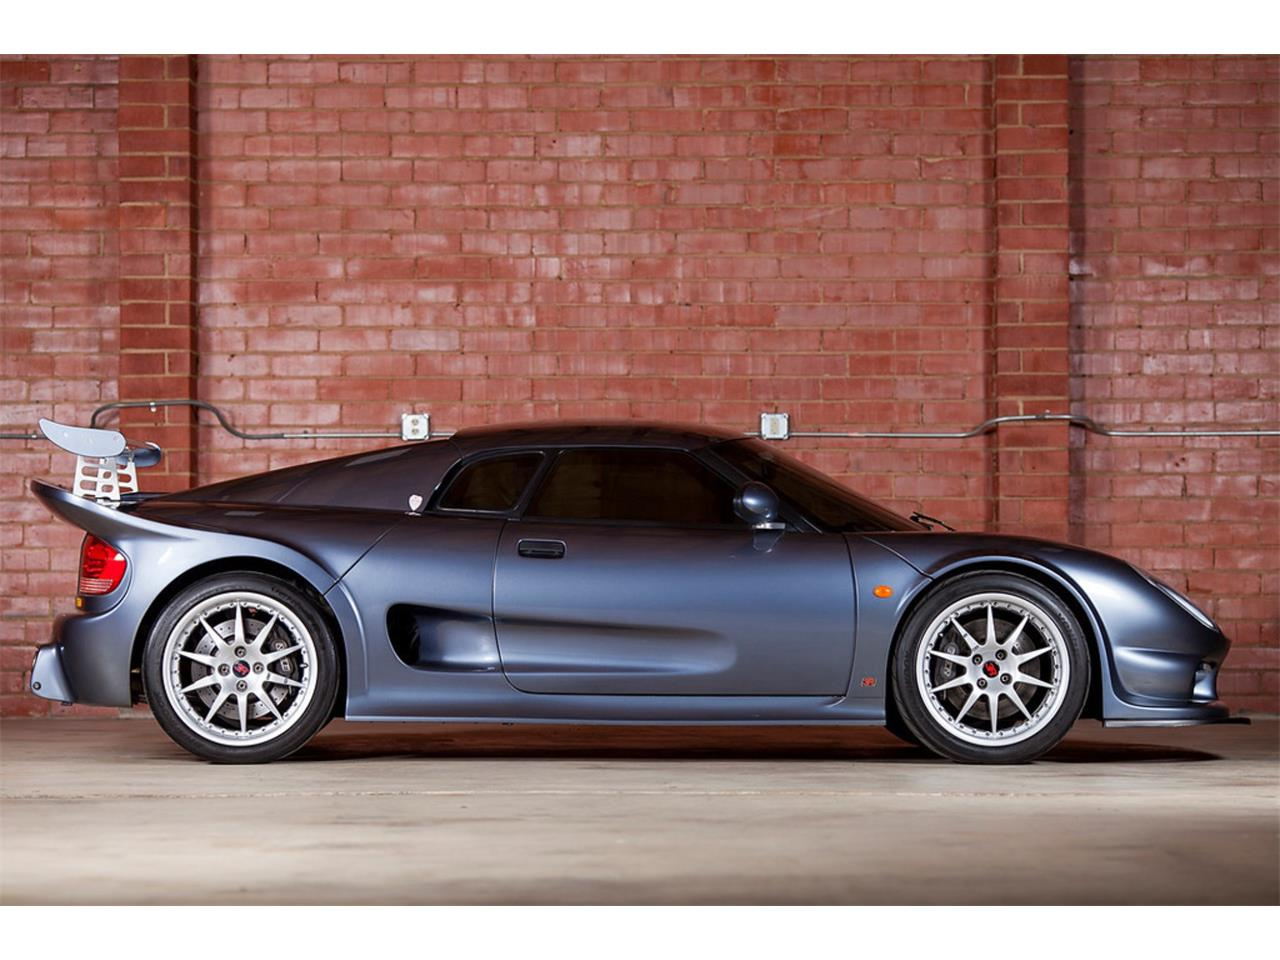 Large Picture of 2005 M12 GTO-3R located in North Carolina Auction Vehicle - Q5KN